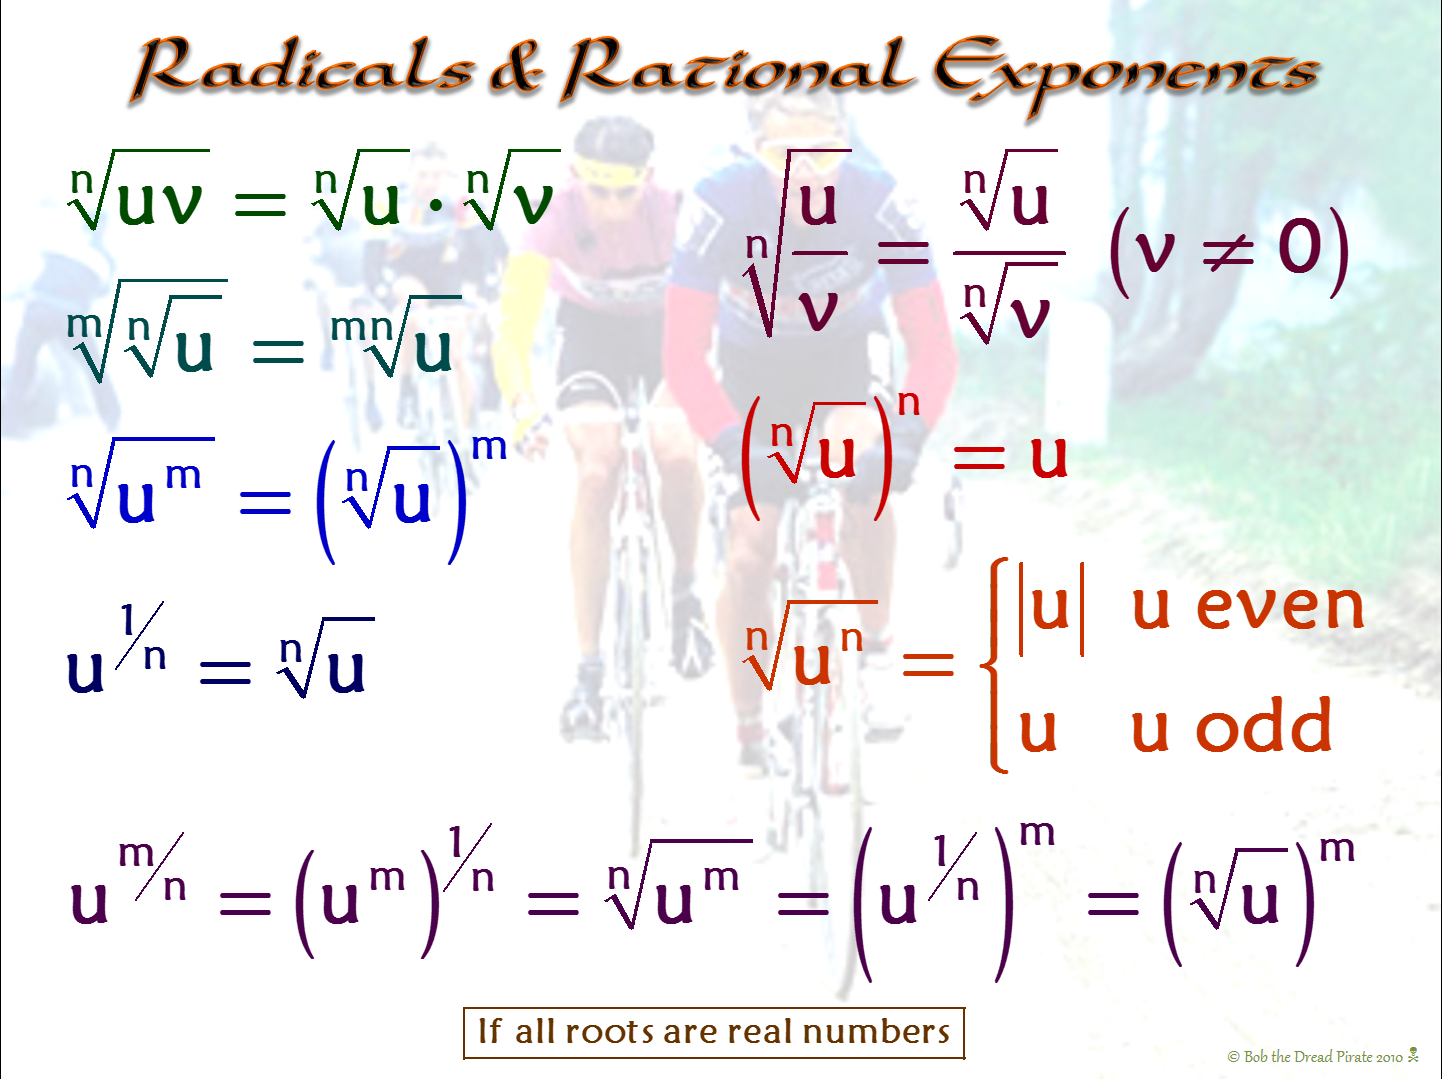 Fresh Ideas - Rules for Radicals & Rational Exponents Radicals math